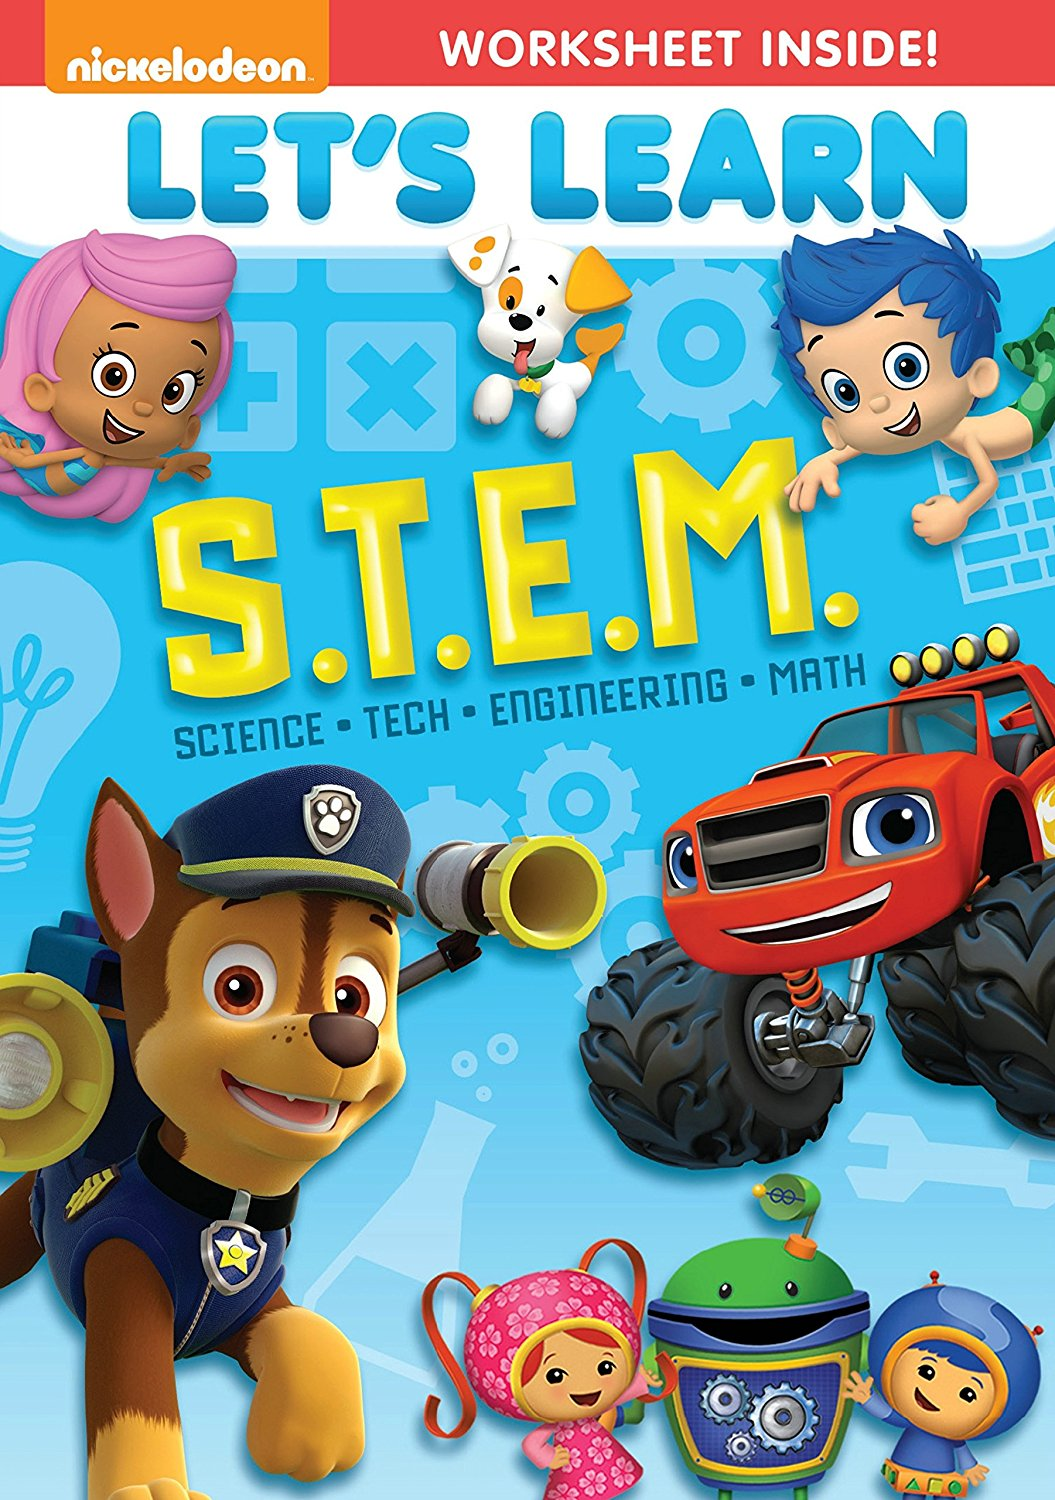 Let's Learn Stem 1